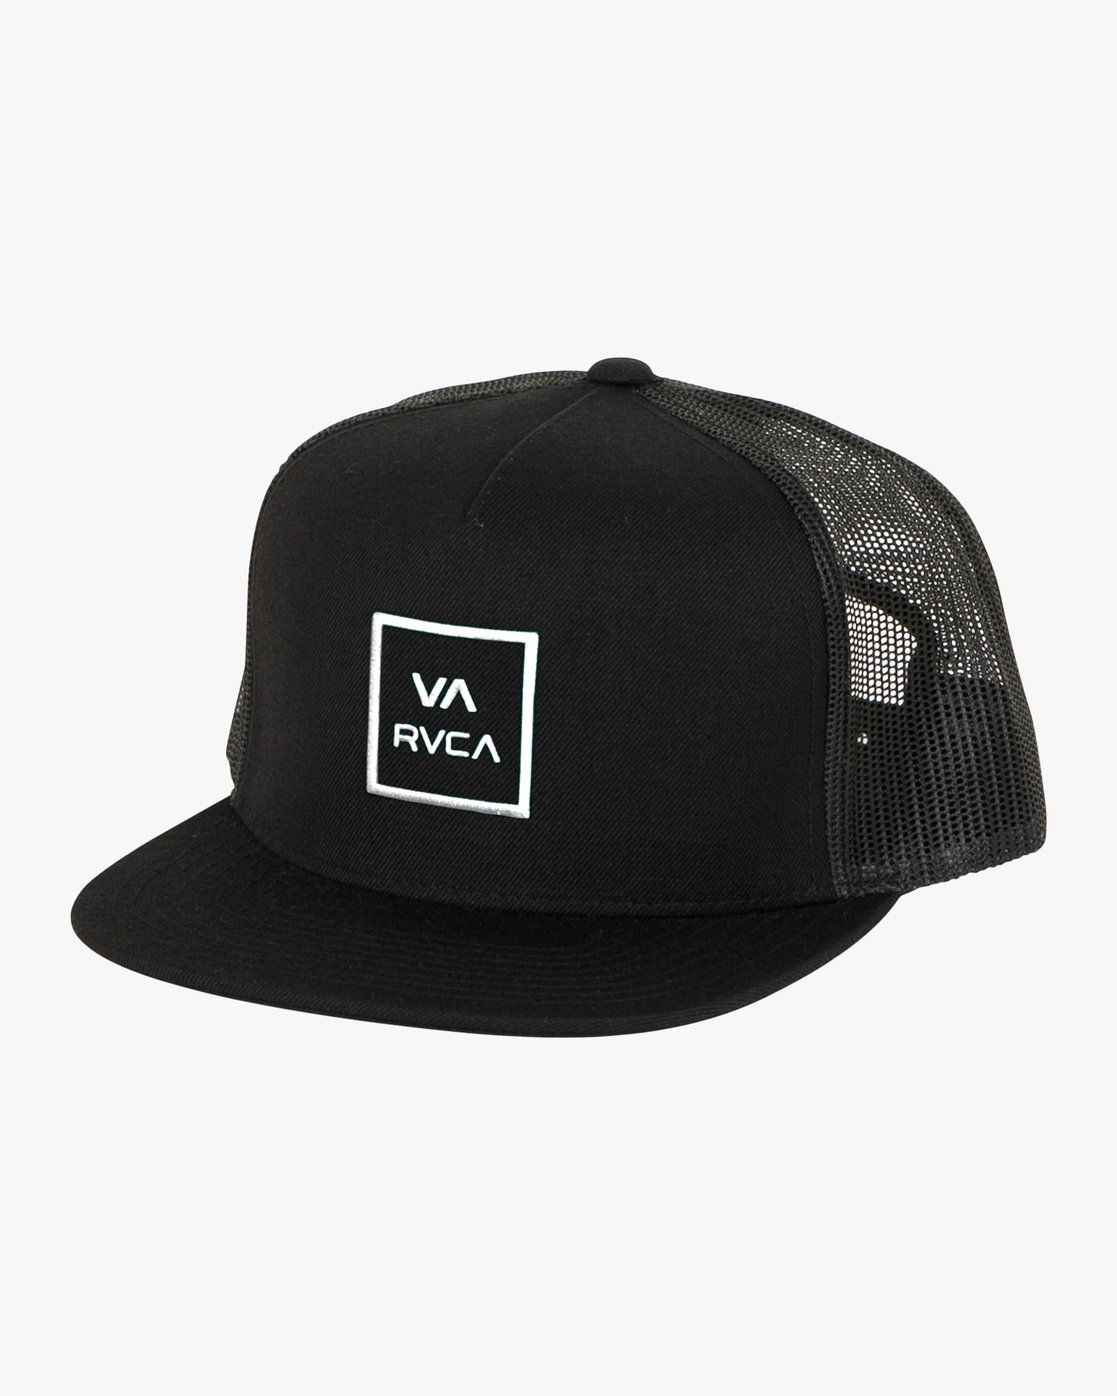 7eeaa451e035a 0 Boy s VA All The Way Trucker Hat Black BAAHWVAA RVCA